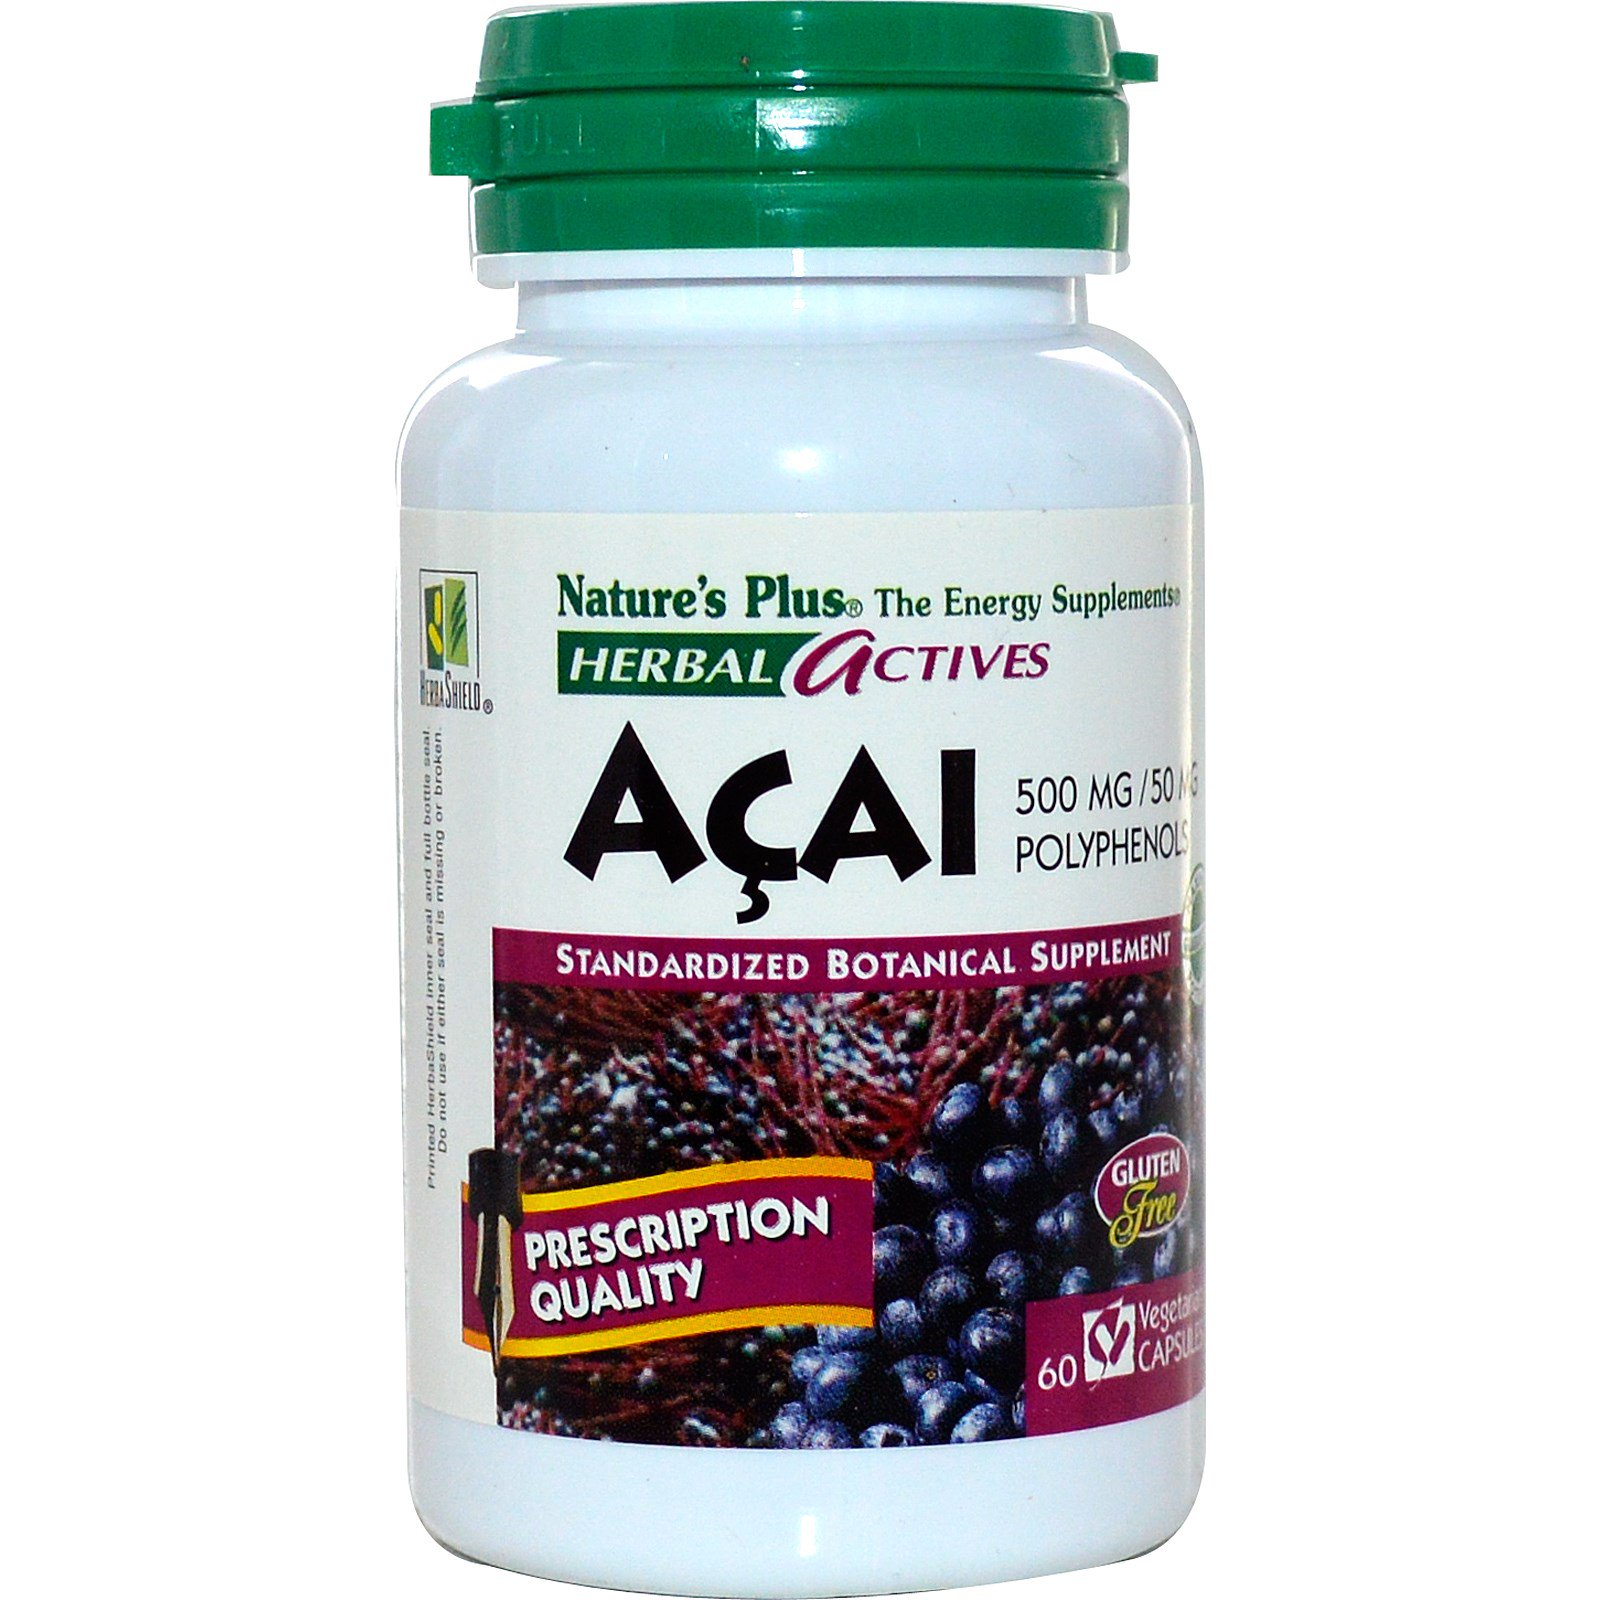 Nature's Plus, Herbal Actives, Acai, 500 mg, 60 Veggie Caps (Discontinued Item)